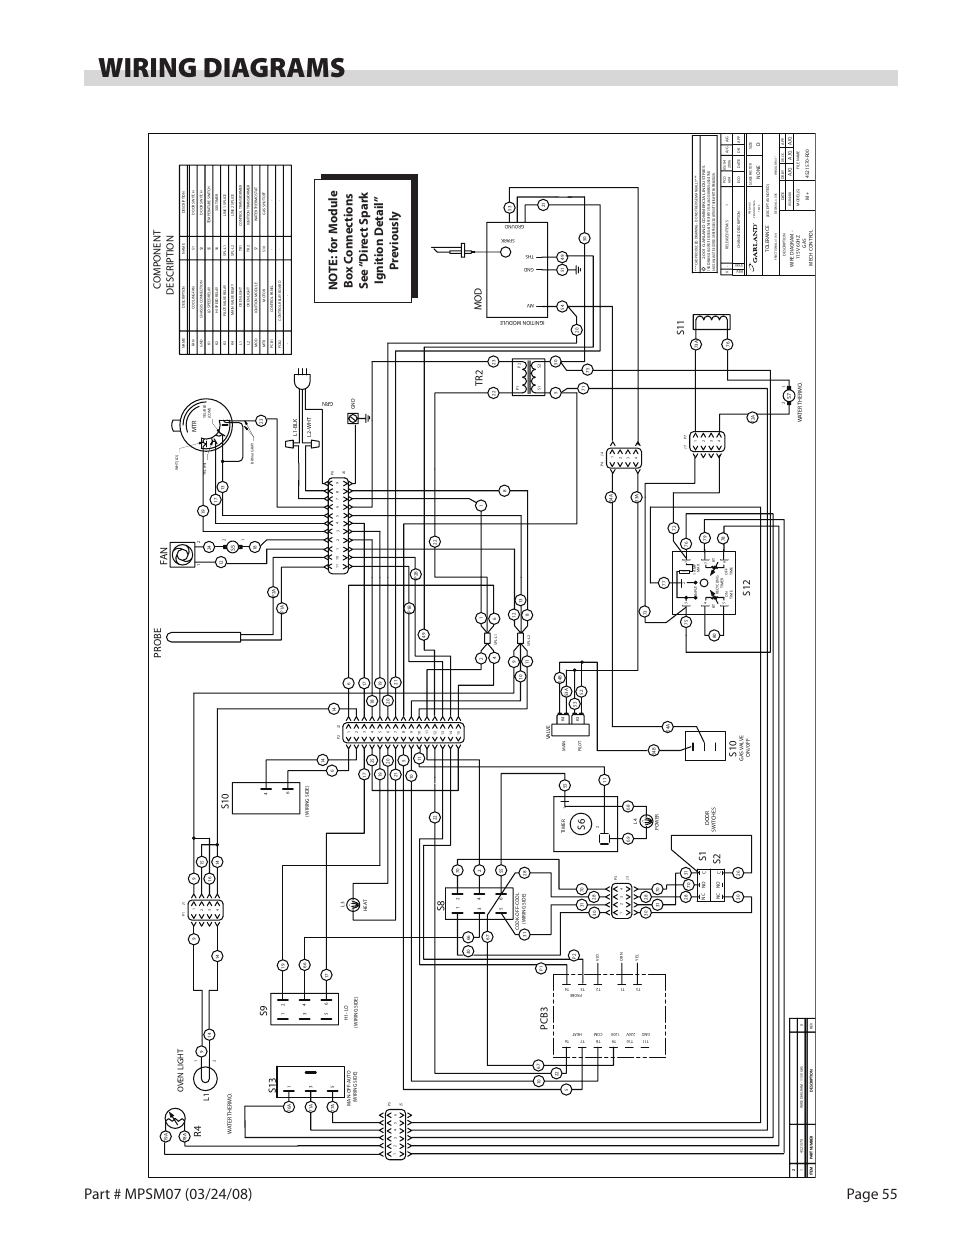 garland mp gd 10 s page55 siemens len00c003120b wiring diagram,len \u2022 indy500 co  at readyjetset.co